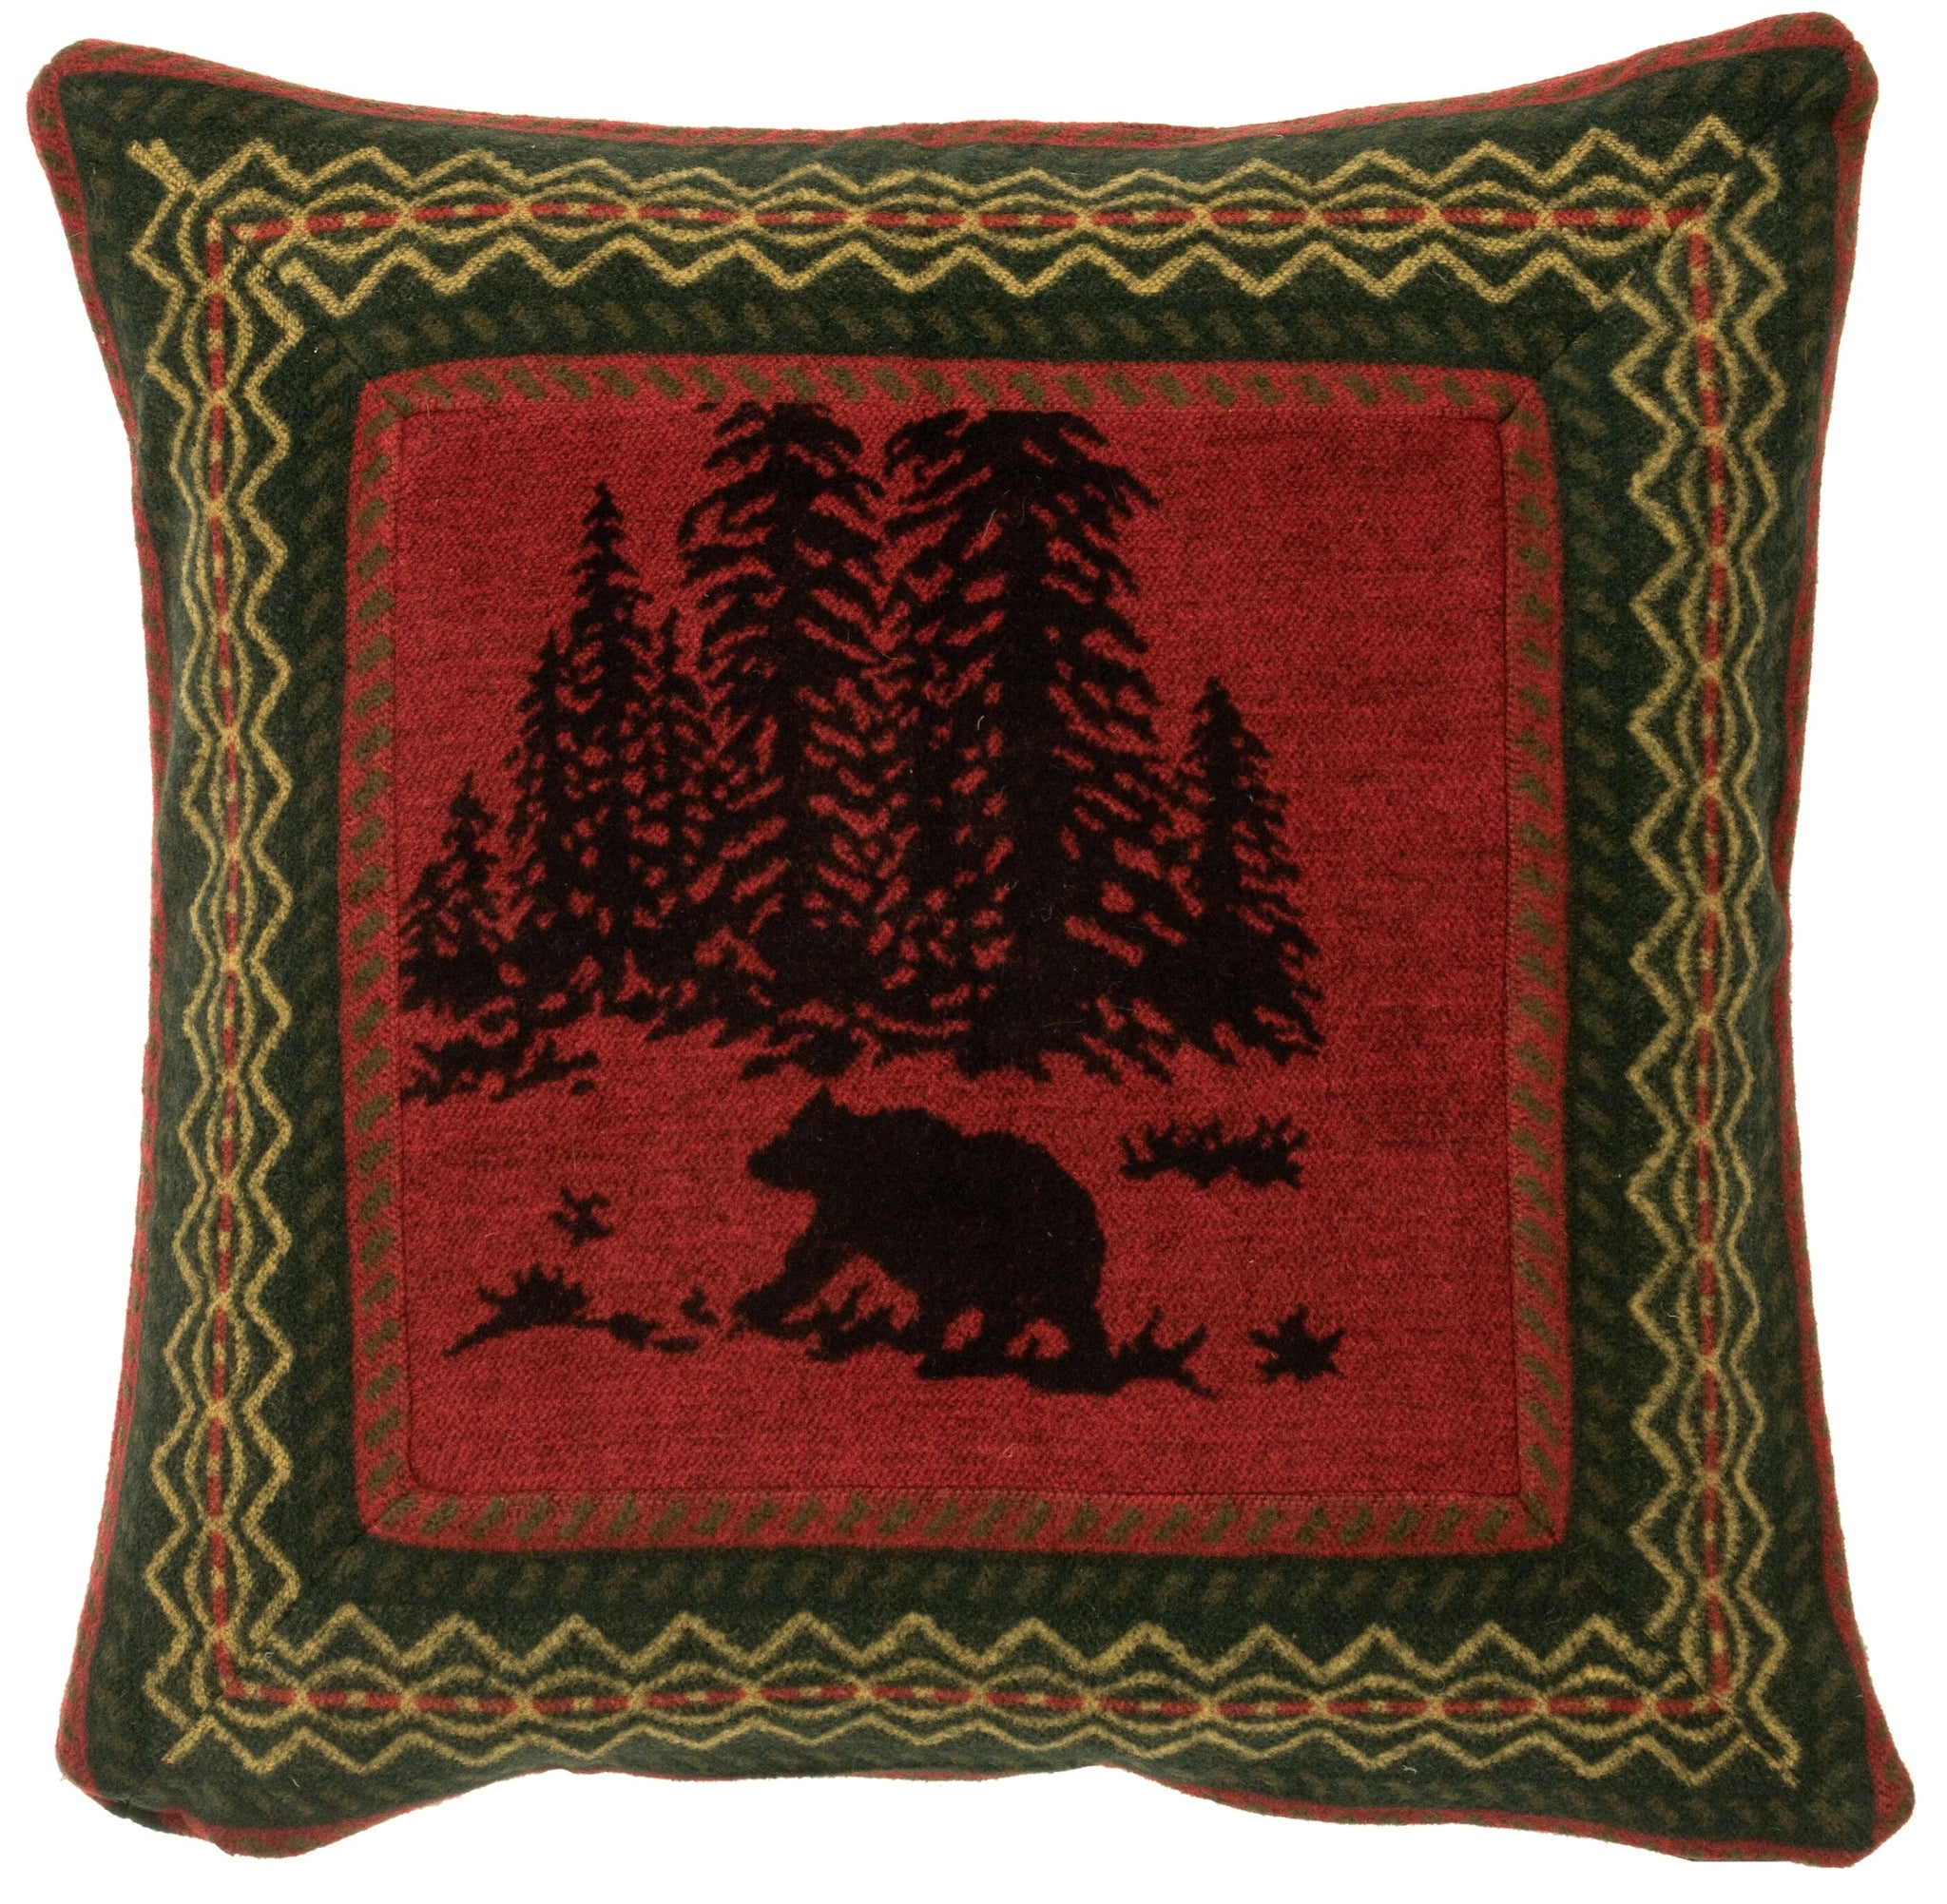 Wooded River Bear Eurosham Wooded River - unique linens online